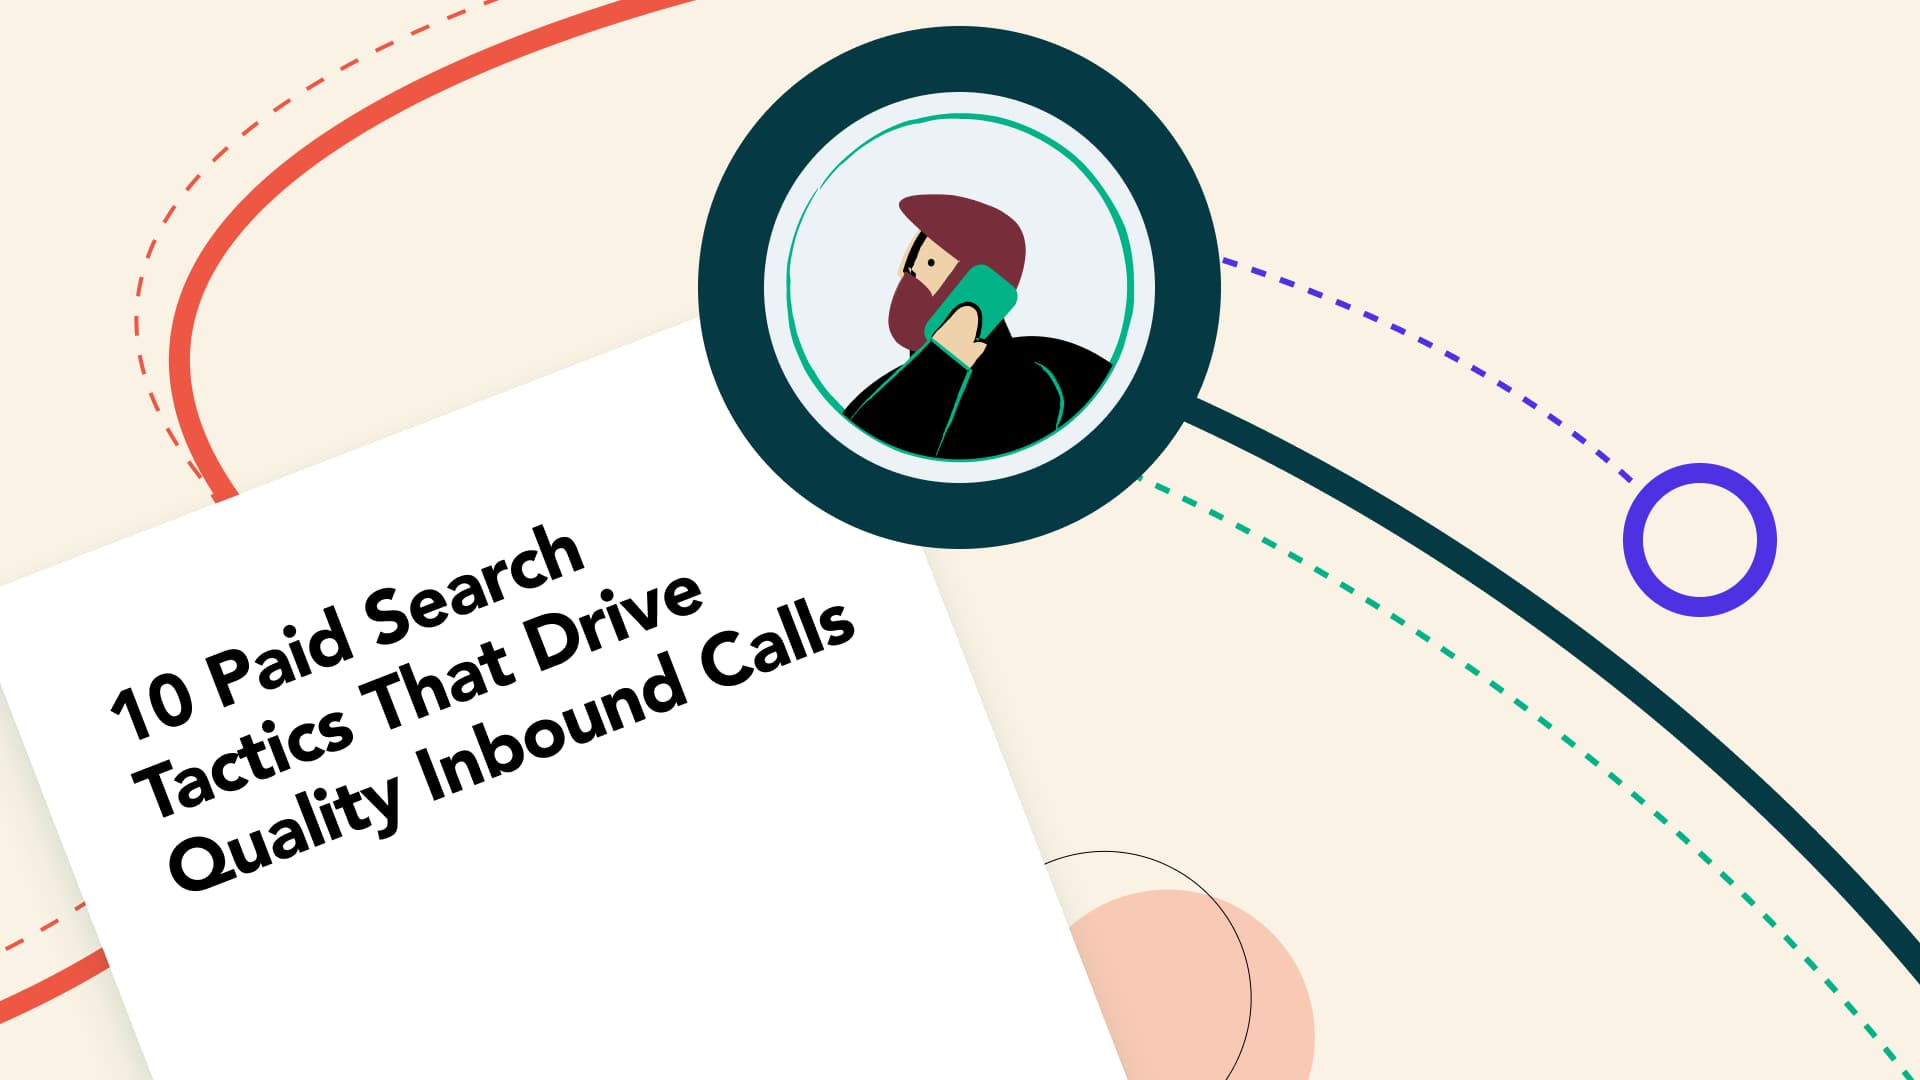 10 Paid Search Tips to Drive Quality Inbound Calls